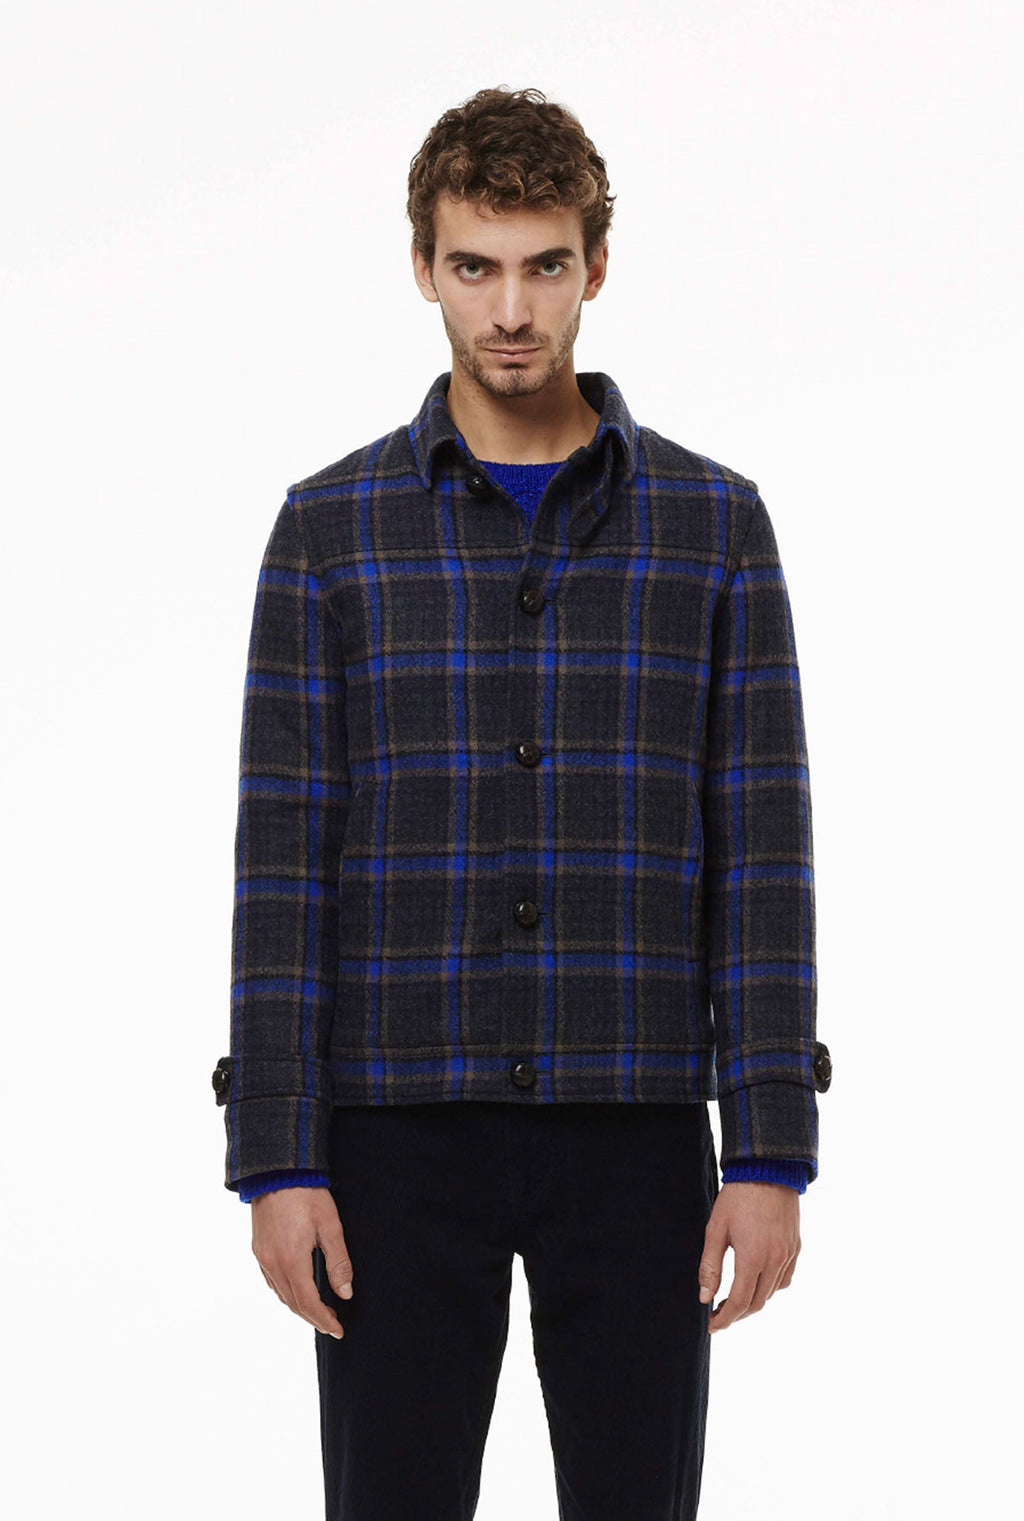 Bomber in check fabric.